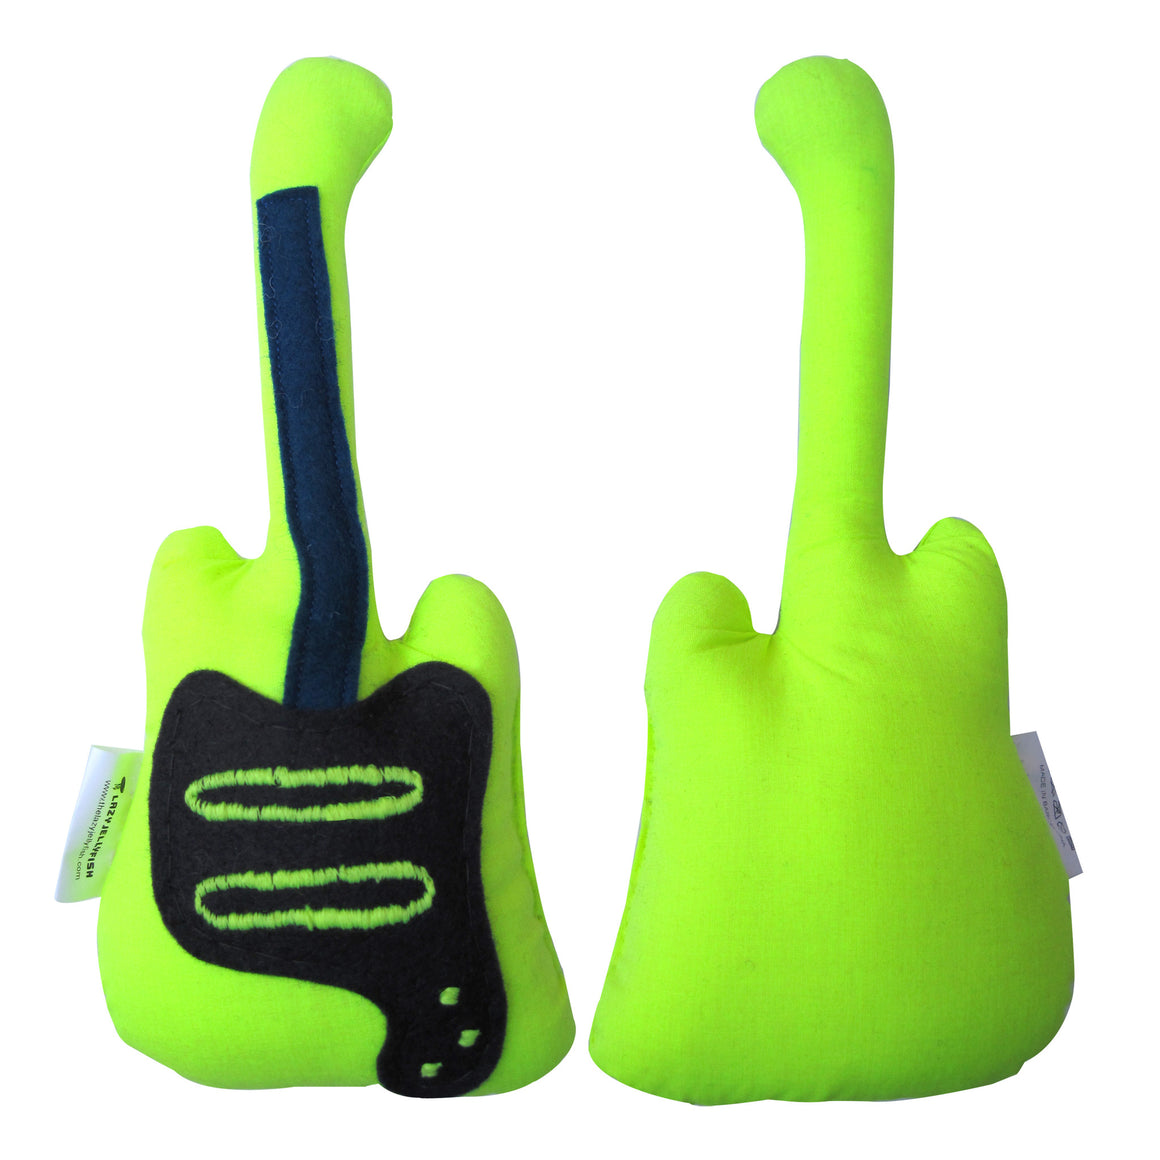 Lemoneon Bass Guitar Rattle